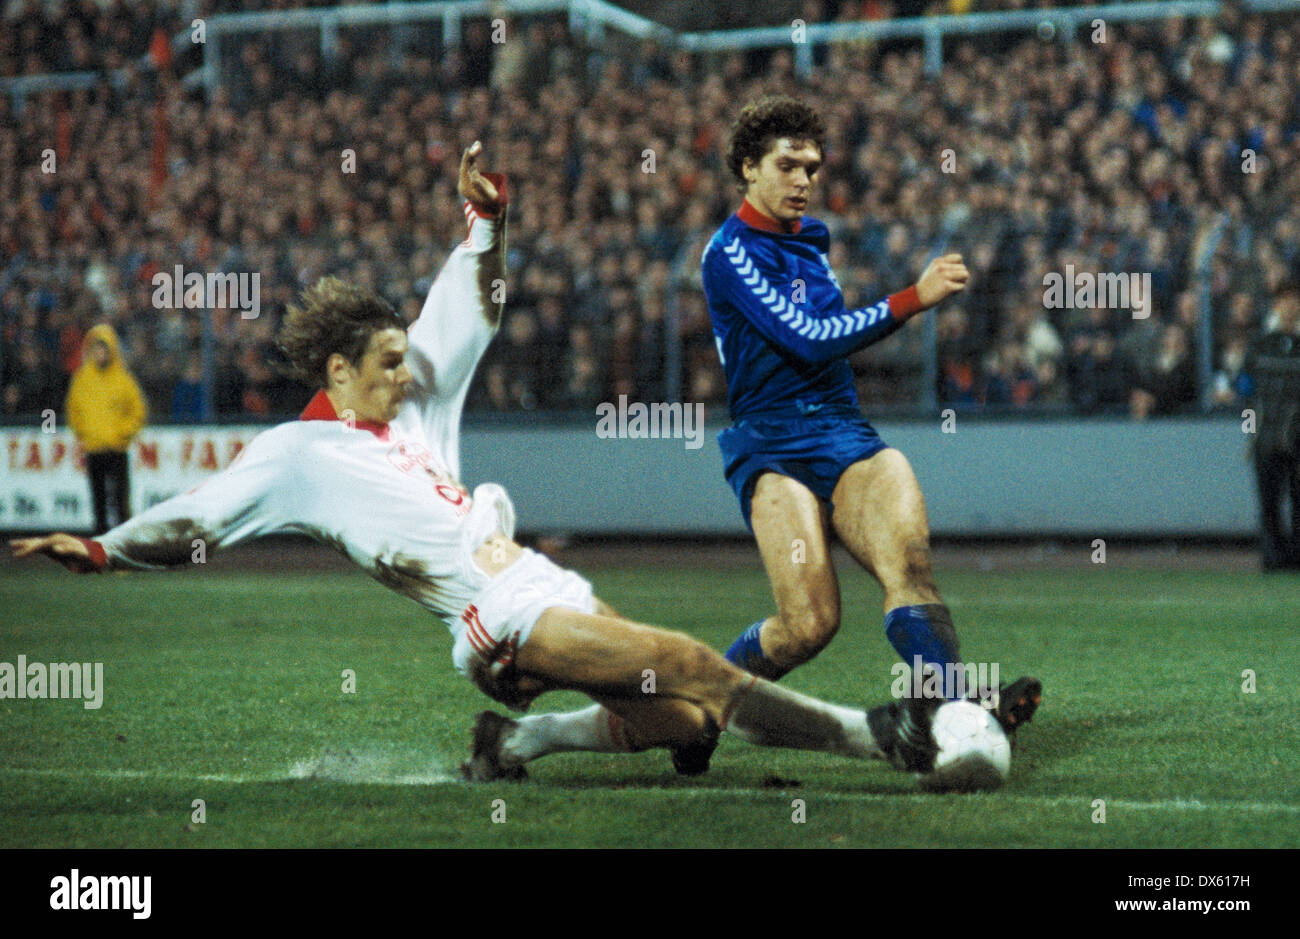 football, 2. Bundesliga Nord, 1978/1979, Grotenburg Stadium, Bayer 05 Uerdingen versus Bayer 04 Leverkusen 0:0, scene of the match, Ludger van de Loo (Uerdingen) right and Juergen Gelsdorf (Leverkusen) - Stock Image